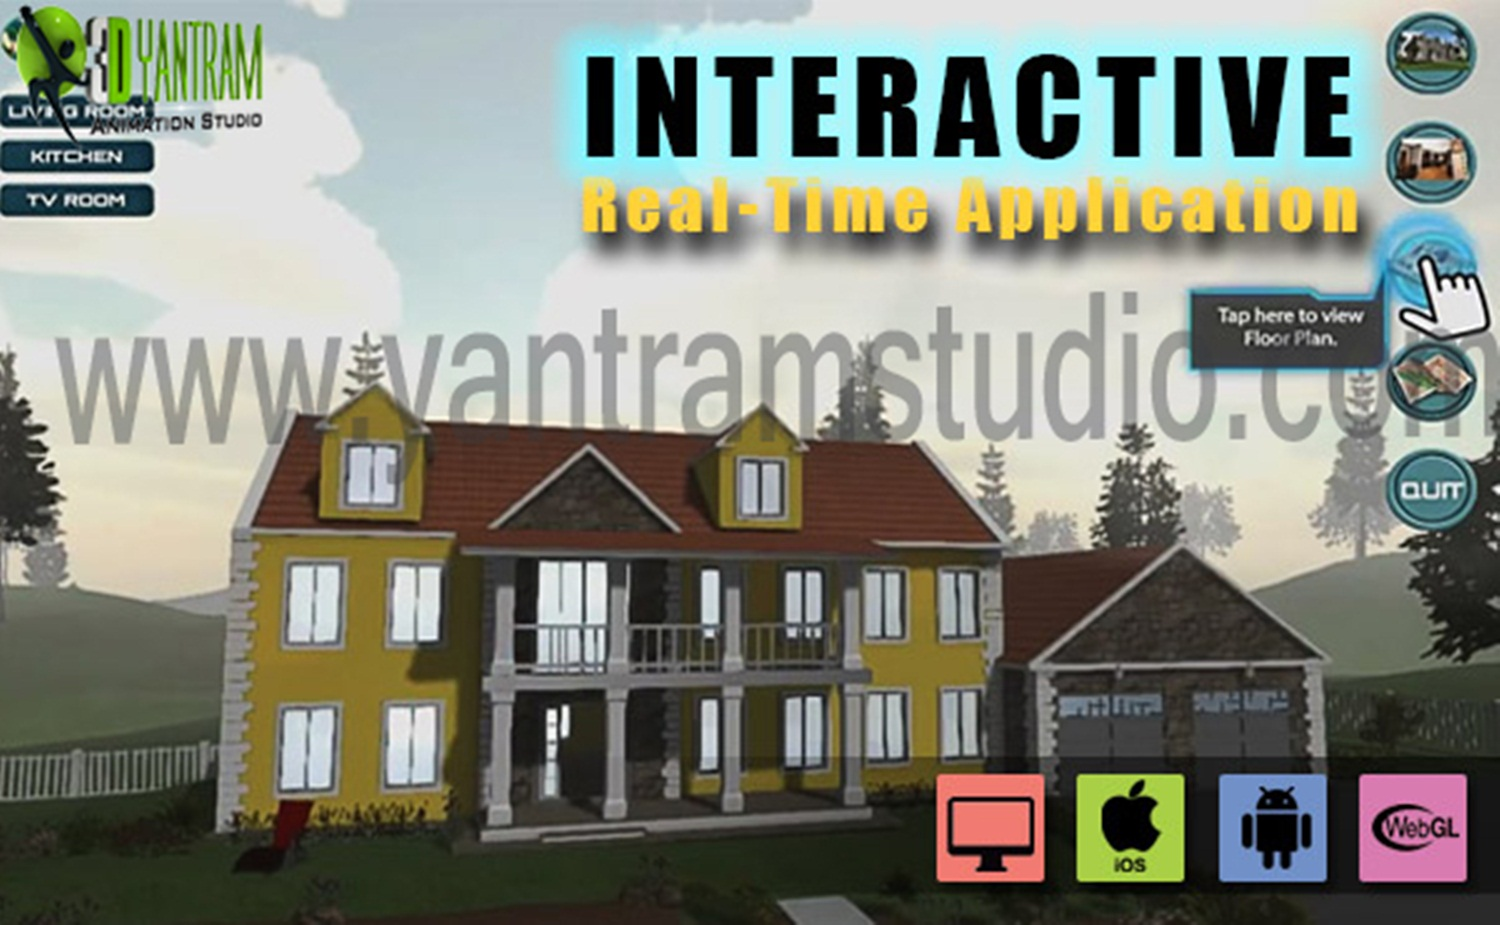 Interactive Virtual Reality By Yantram Virtual Reality Developer - Washington, USA VR Realstate marketing-oriented website that is well designed with calls to action can literally catapult your real estate business to the next level. Ninety-two percent of home buyers use the internet. by yantramstudio